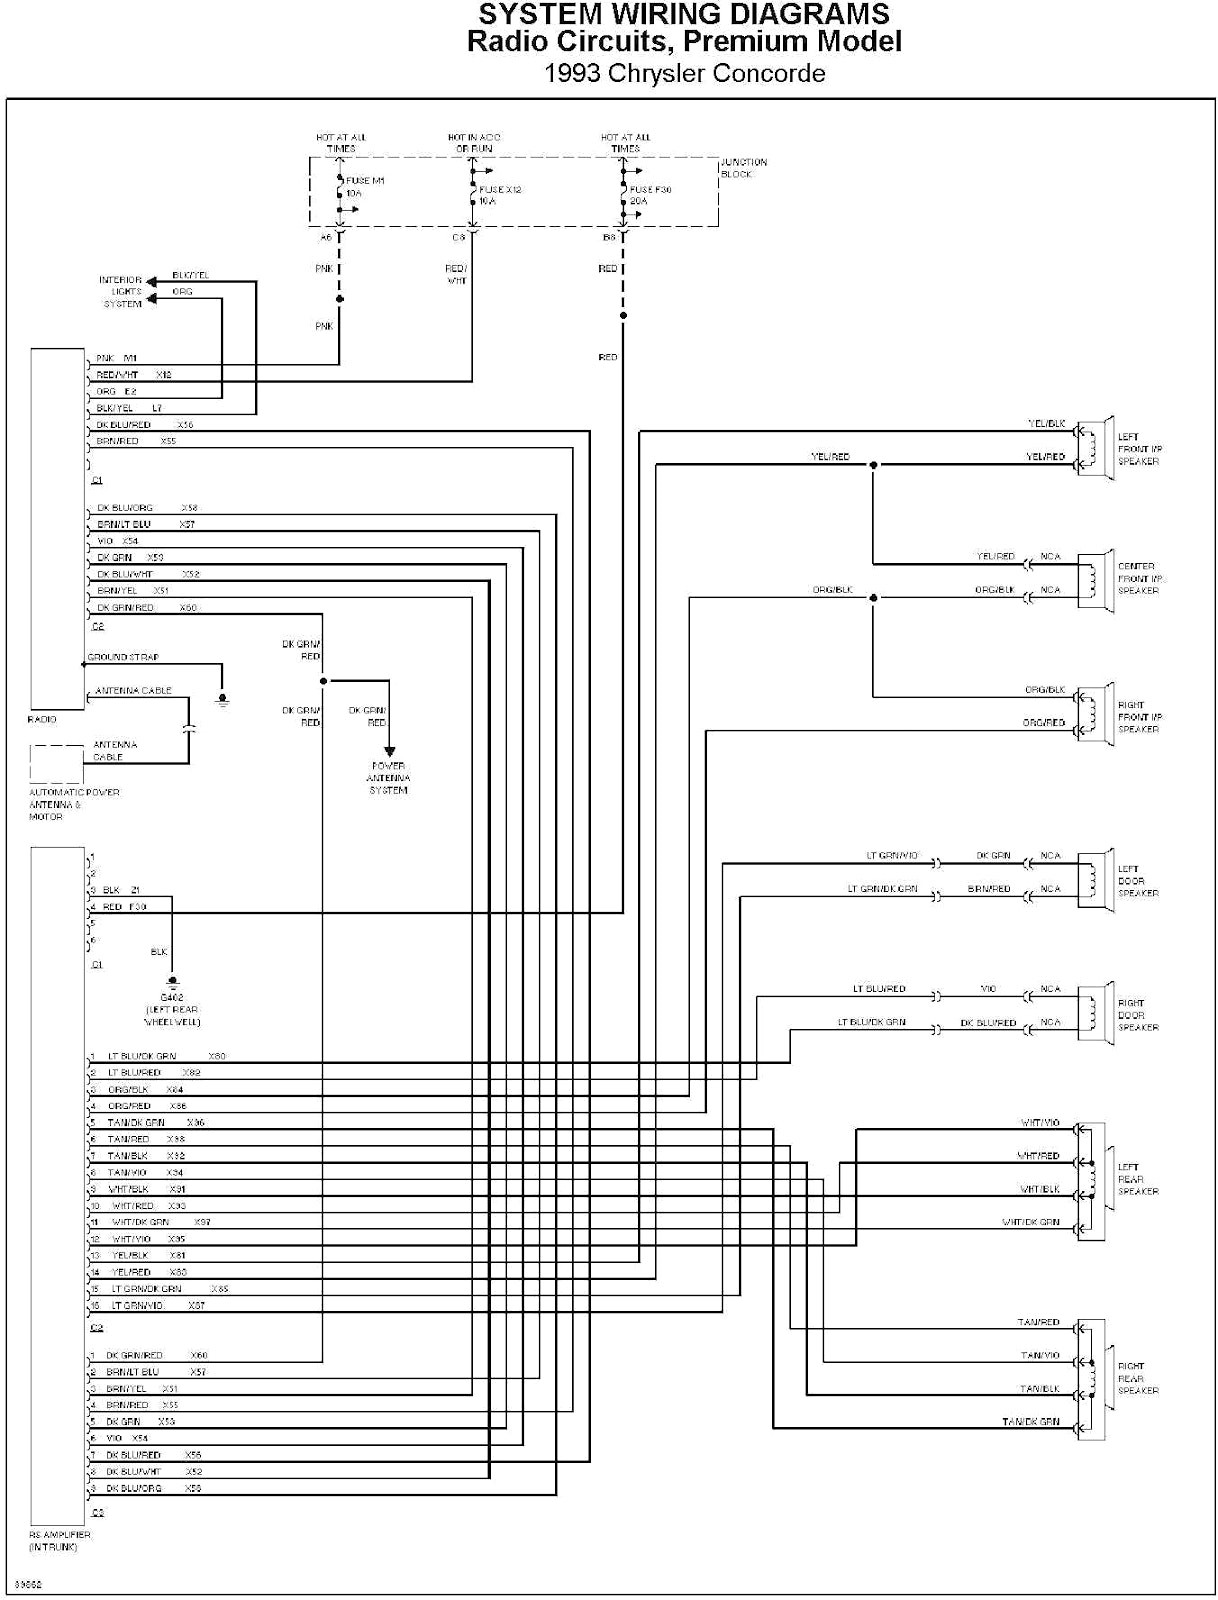 chrysler concorde wiring diagram hvac 18 16 ms krankenfahrten de \u2022 1997 Chrysler Intrepid 2000 chrysler concorde wiring diagram 12 12 asyaunited de u2022 rh 12 12 asyaunited de hvac